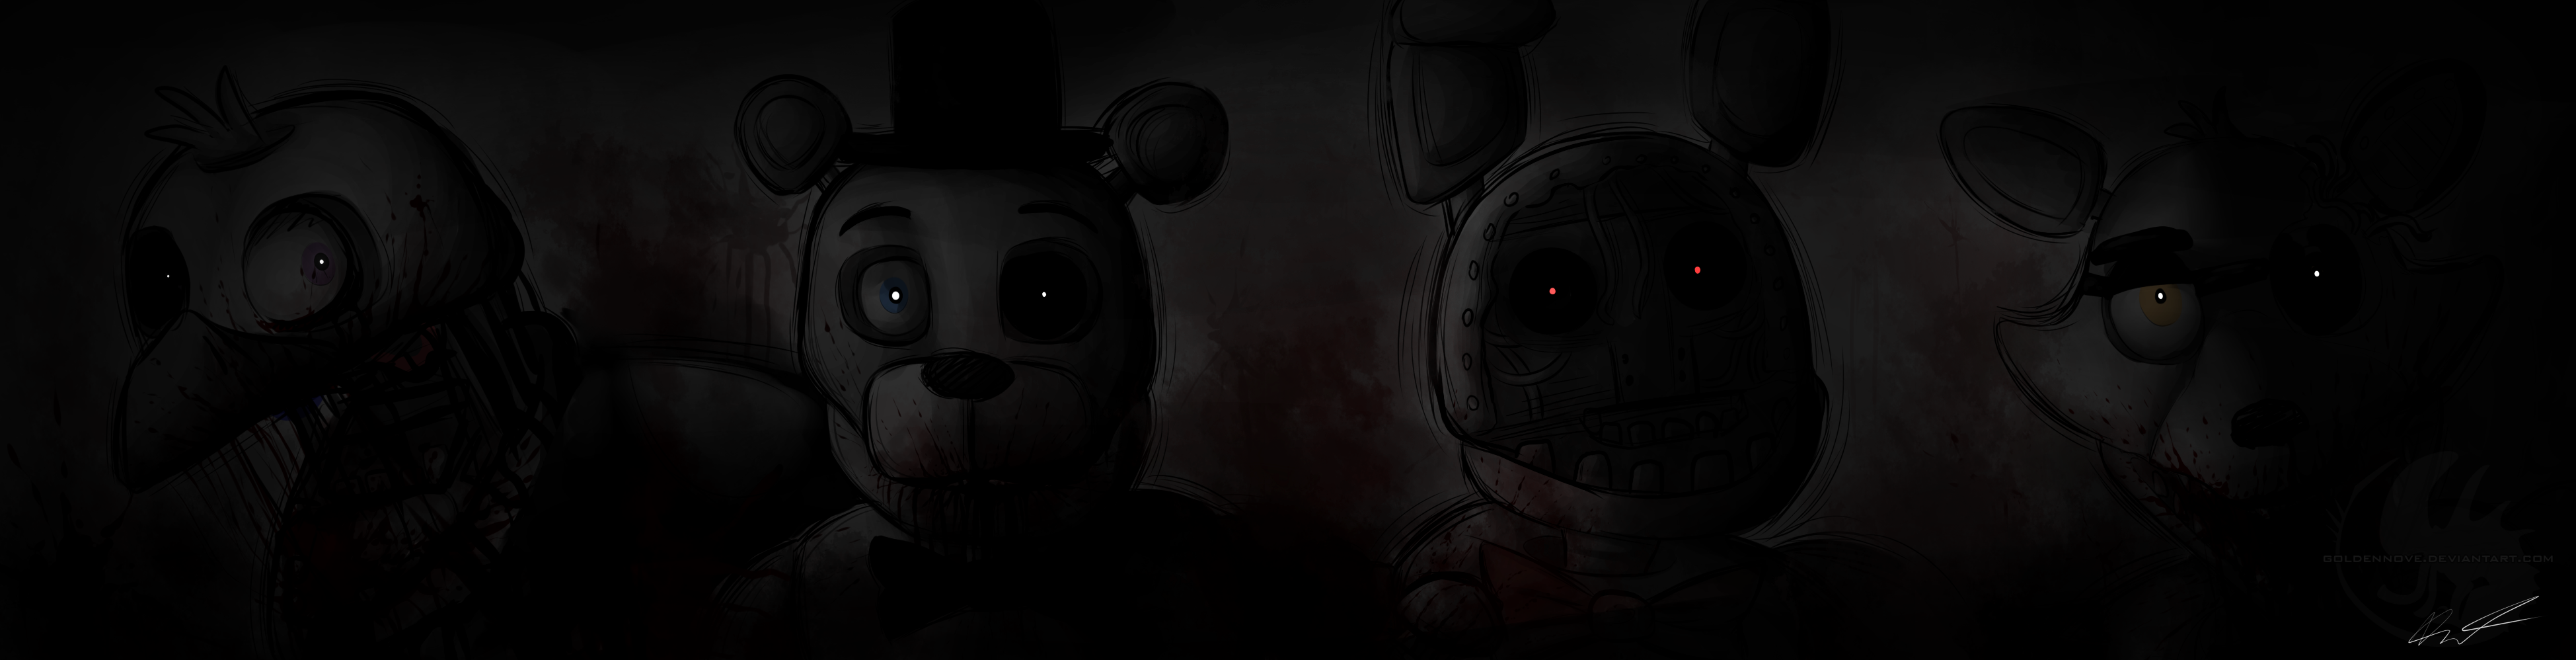 fnaf_fa2_by_goldennove-d8o8a83.png